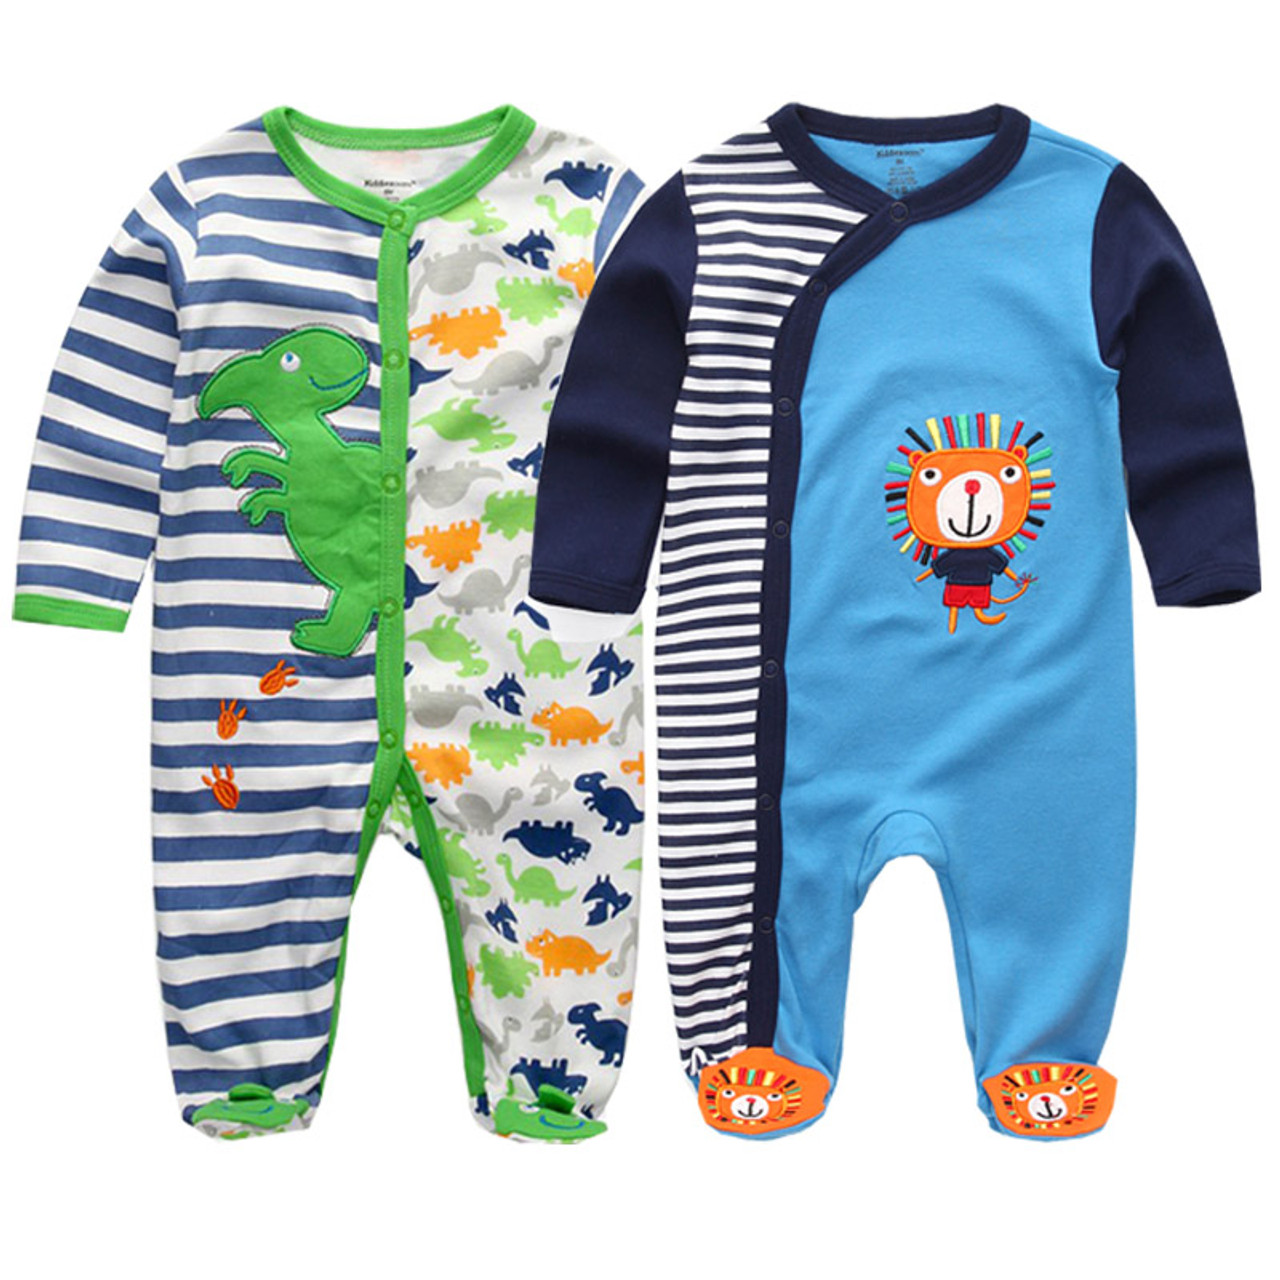 3b4c4225ba85 ... 2018 baby clothes Full Sleeve cotton infantis baby clothing romper  cartoon costume ropa bebe 3 6 ...